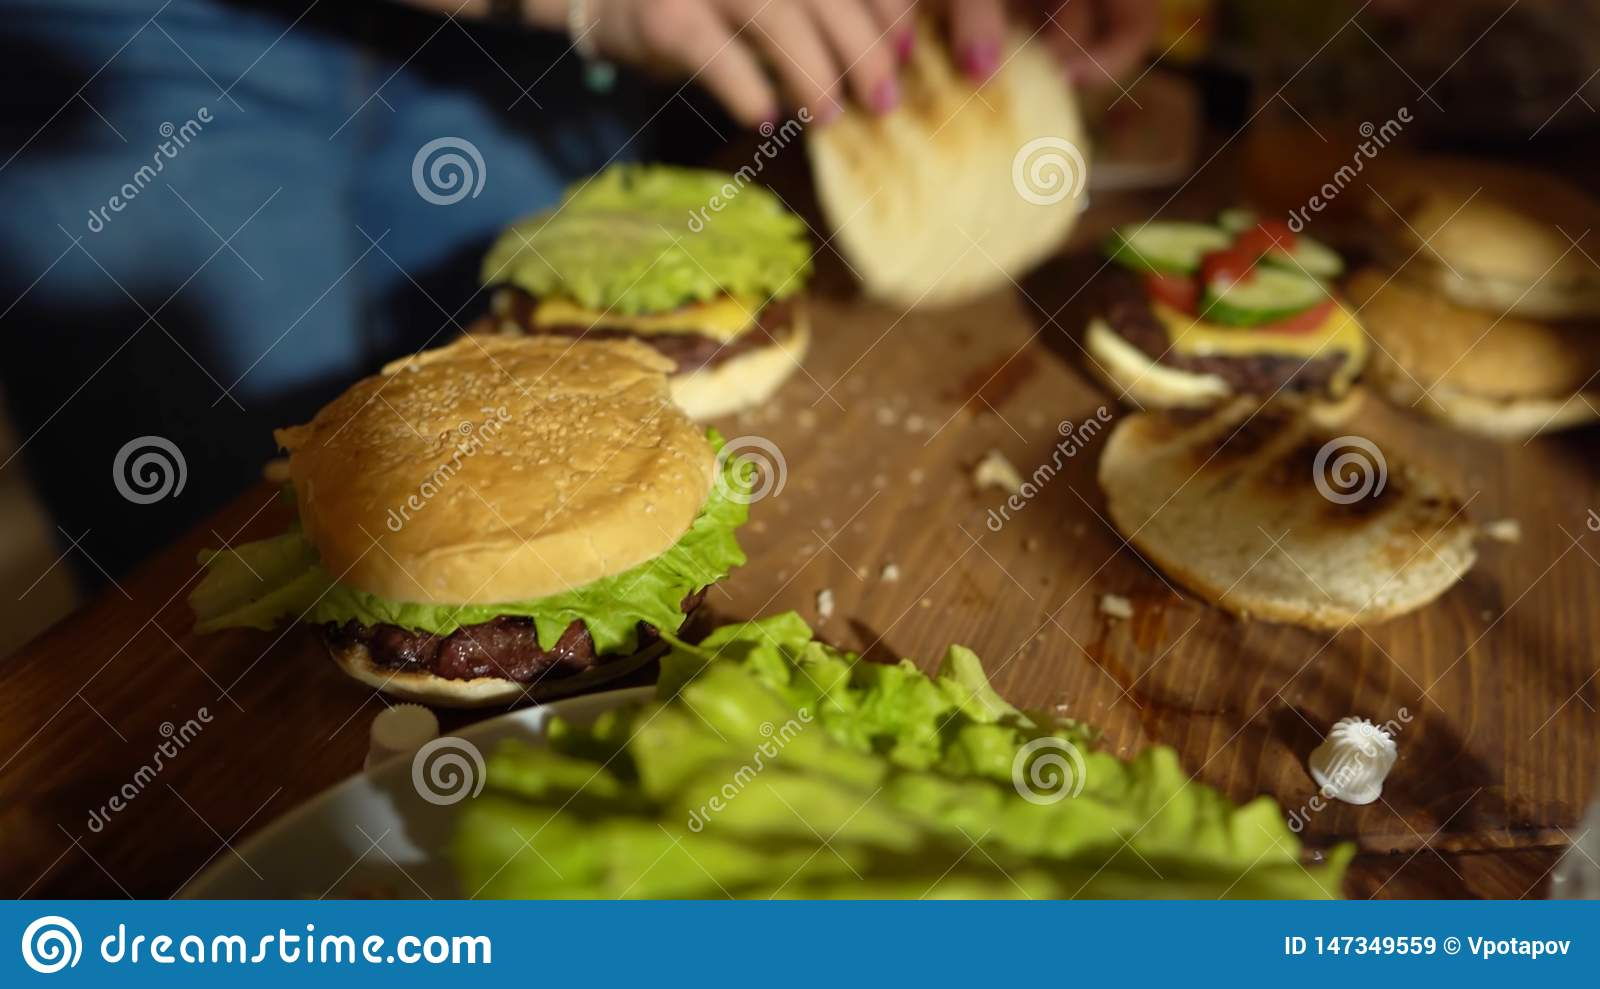 Preparing hamburgers, making hamburger, Ingredients for cooking burgers , vegetables, cheese and vegetables on table.